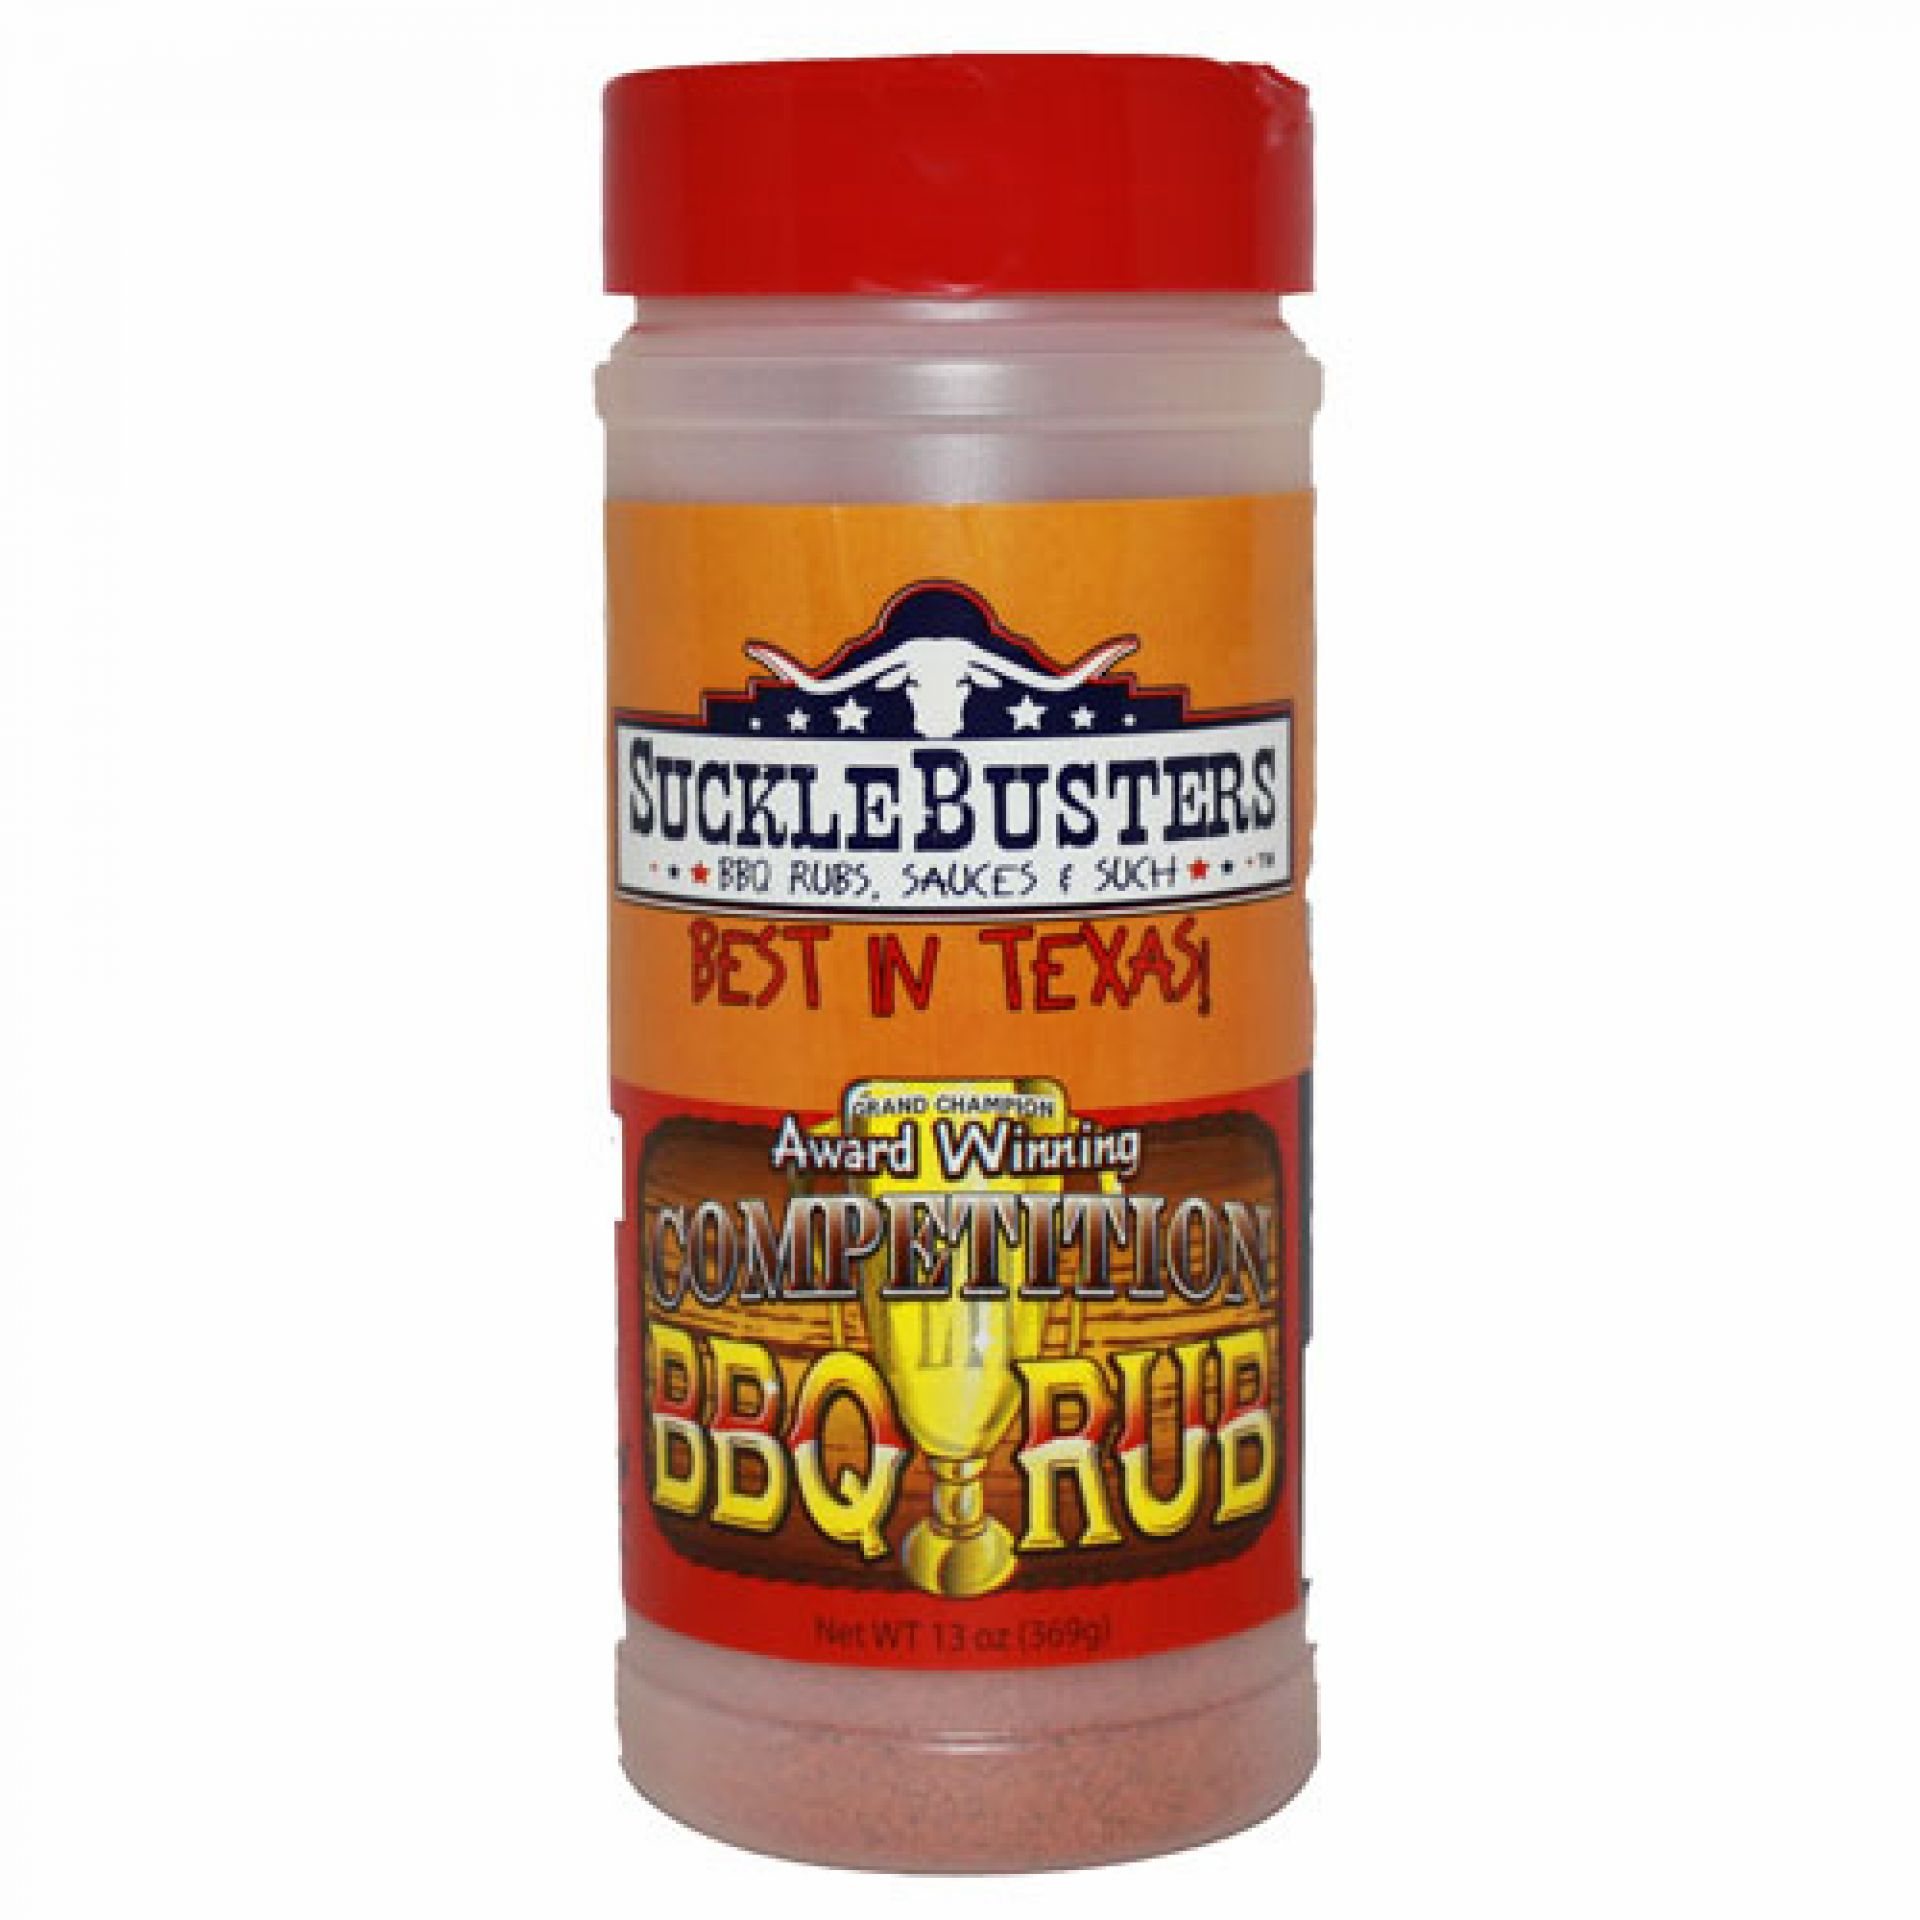 Suckle Busters Competition BBQ Rub 369g